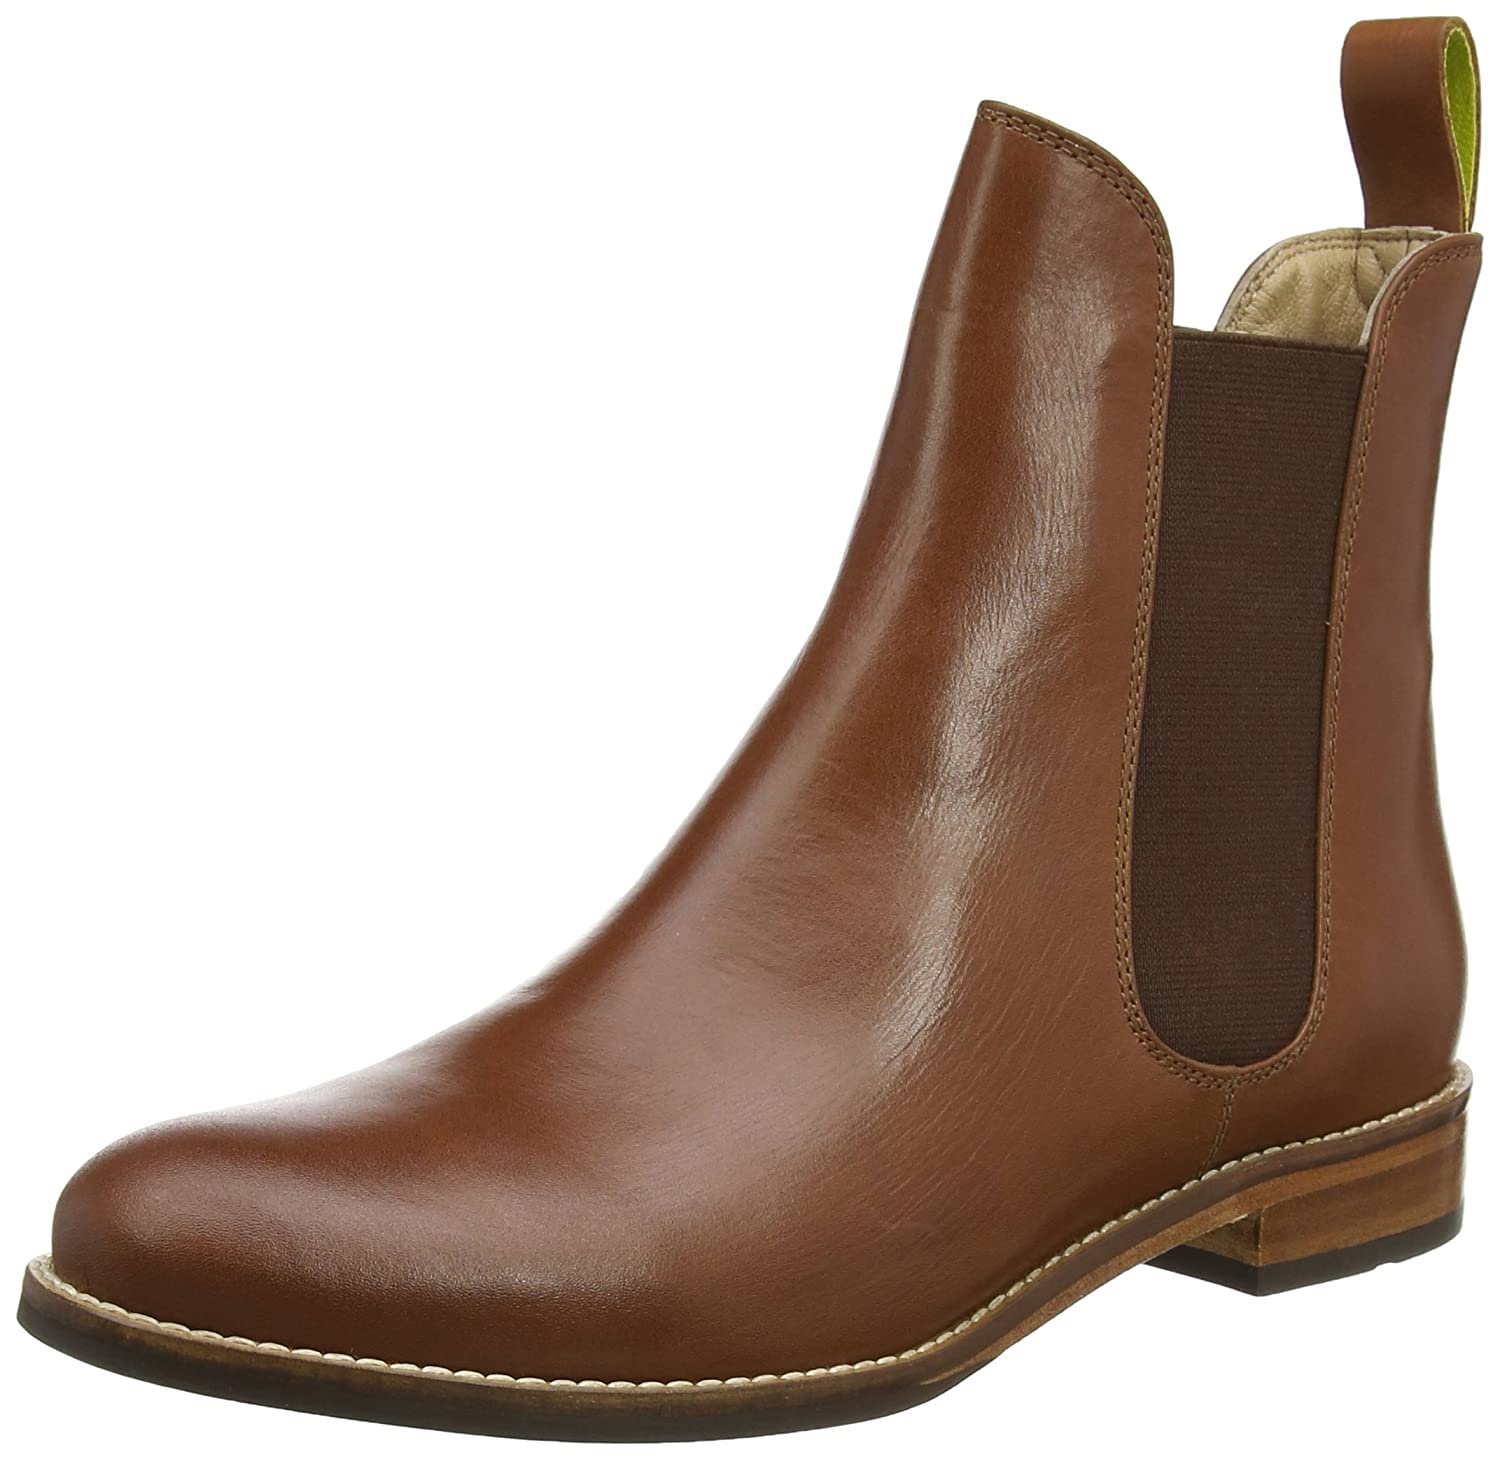 Joules Women's Westbourne Leather Chelsea Boots B01JGPSO98 10 B(M) US|Dark Brown